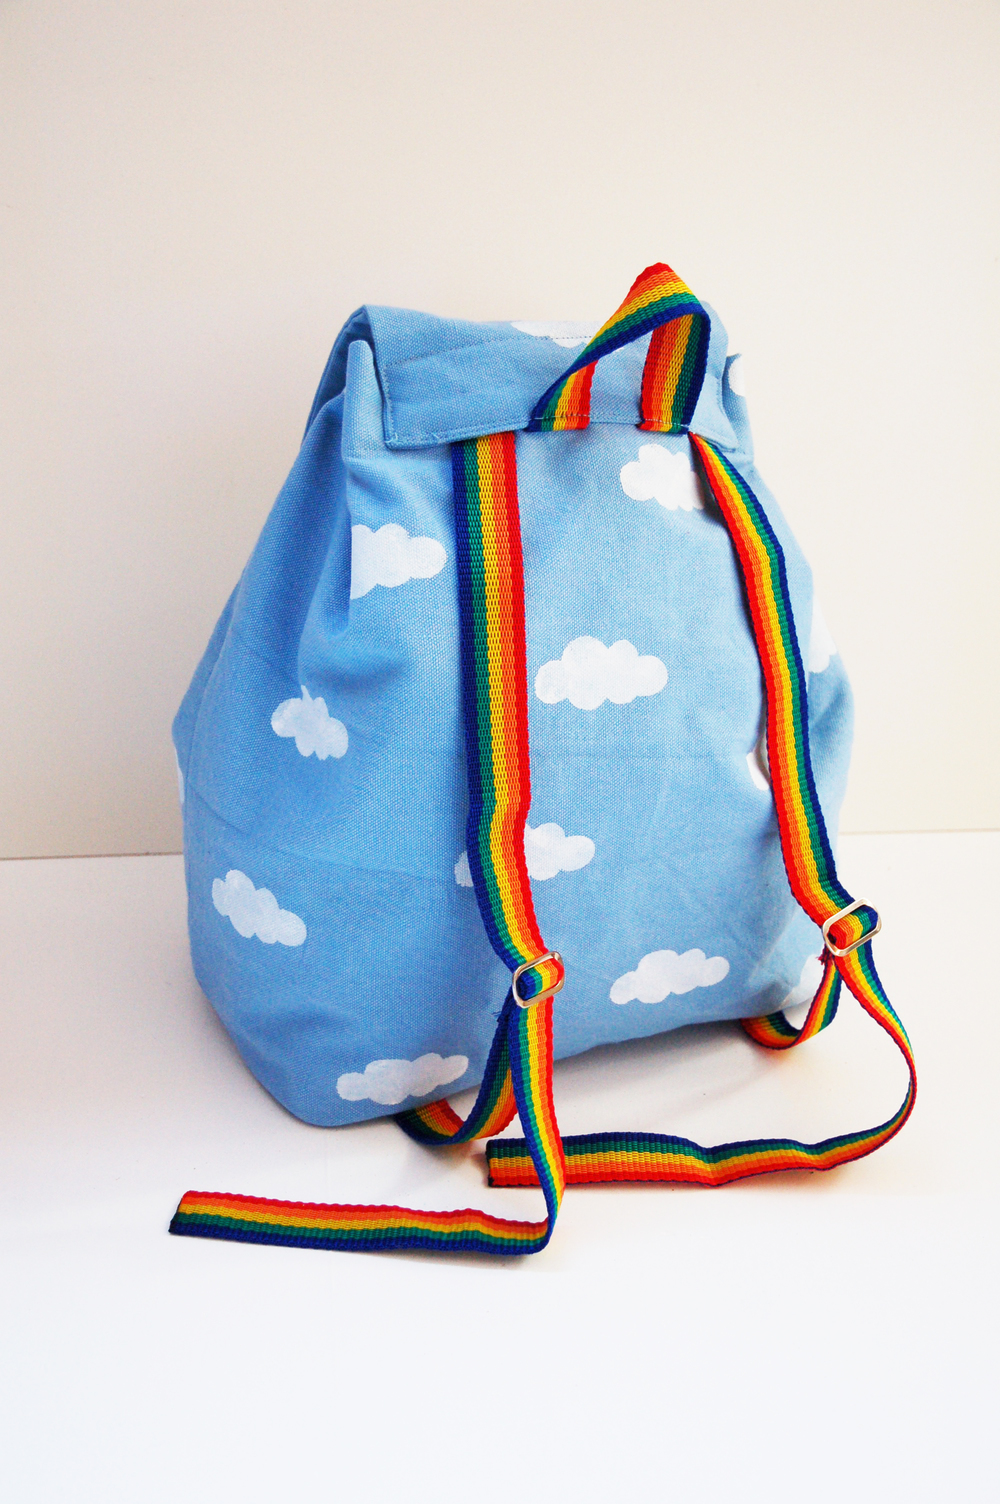 Cloud backpack with rainbow straps